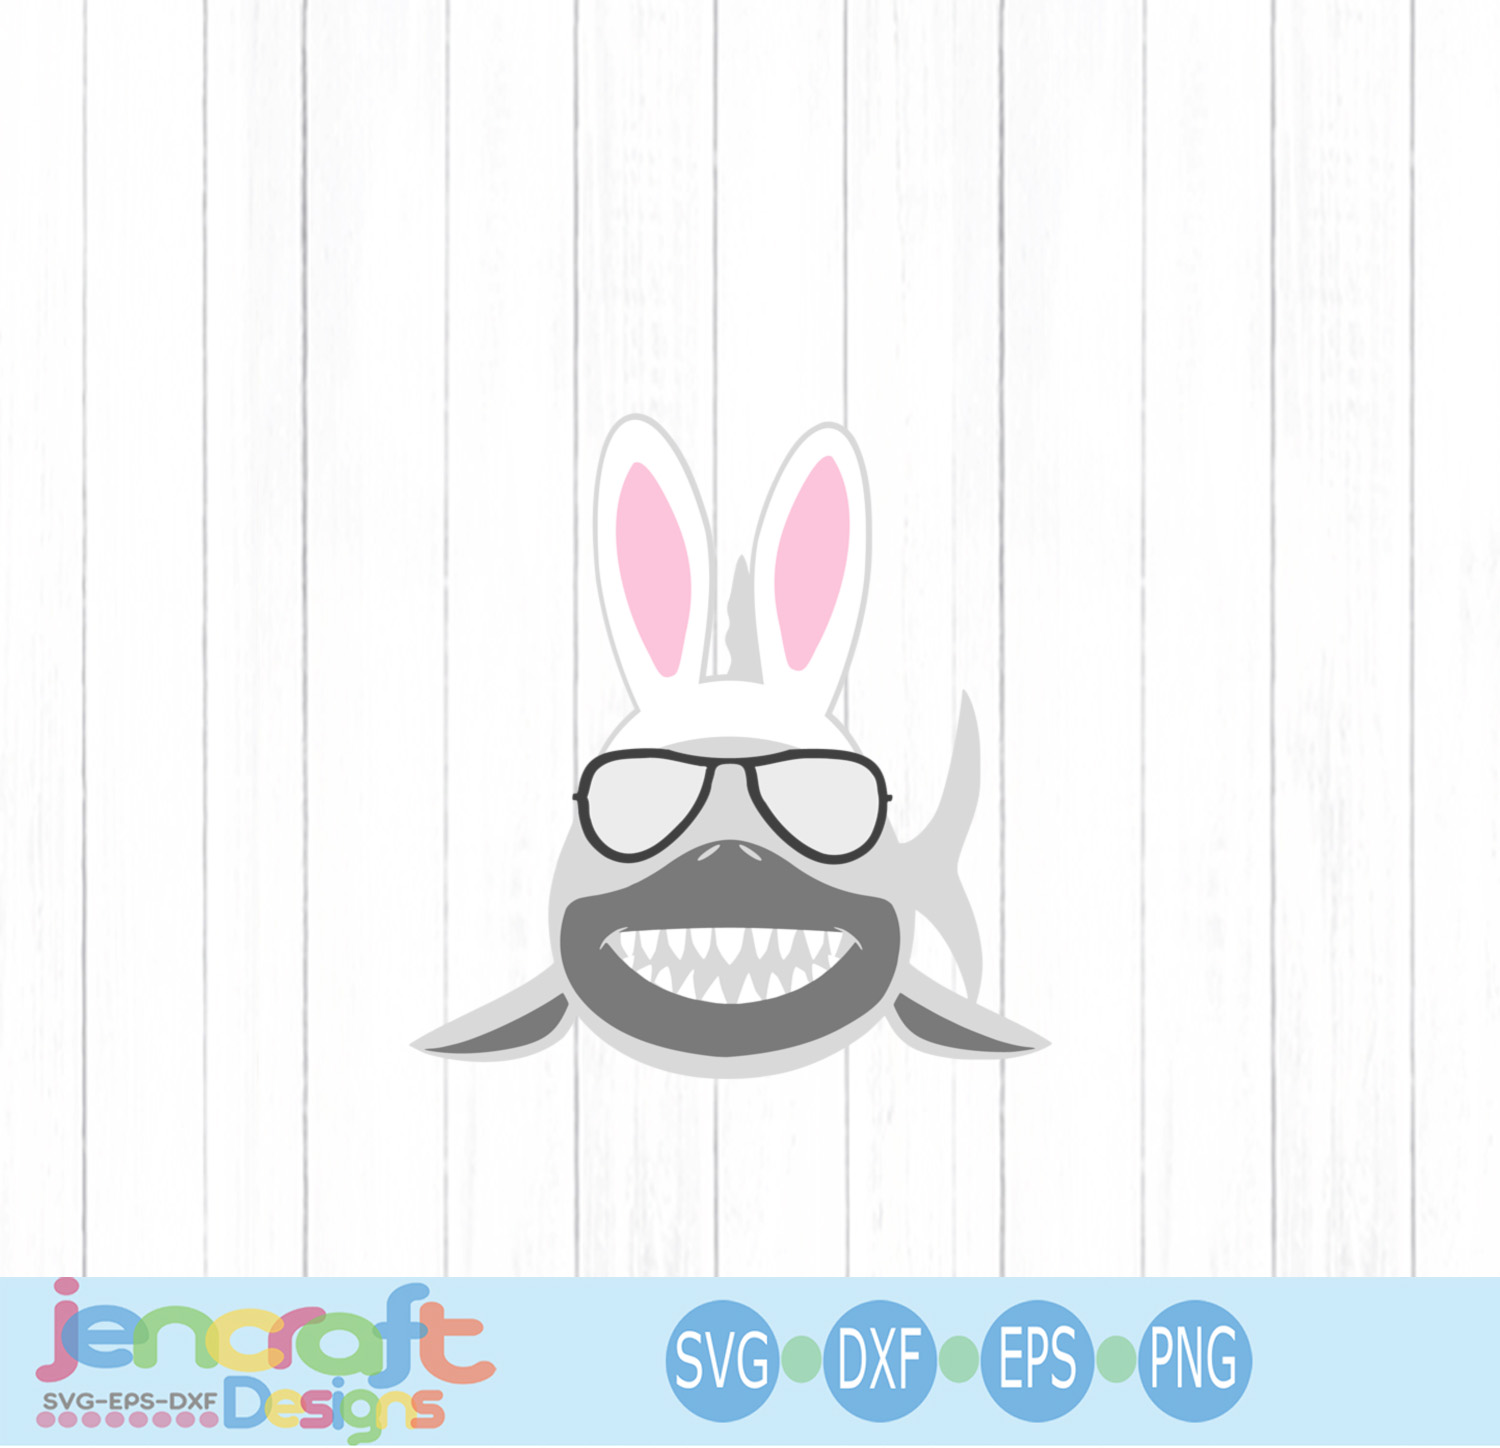 Easter Bunny Shark Svg, Sunglasses svg, eps, dxf, png example image 3